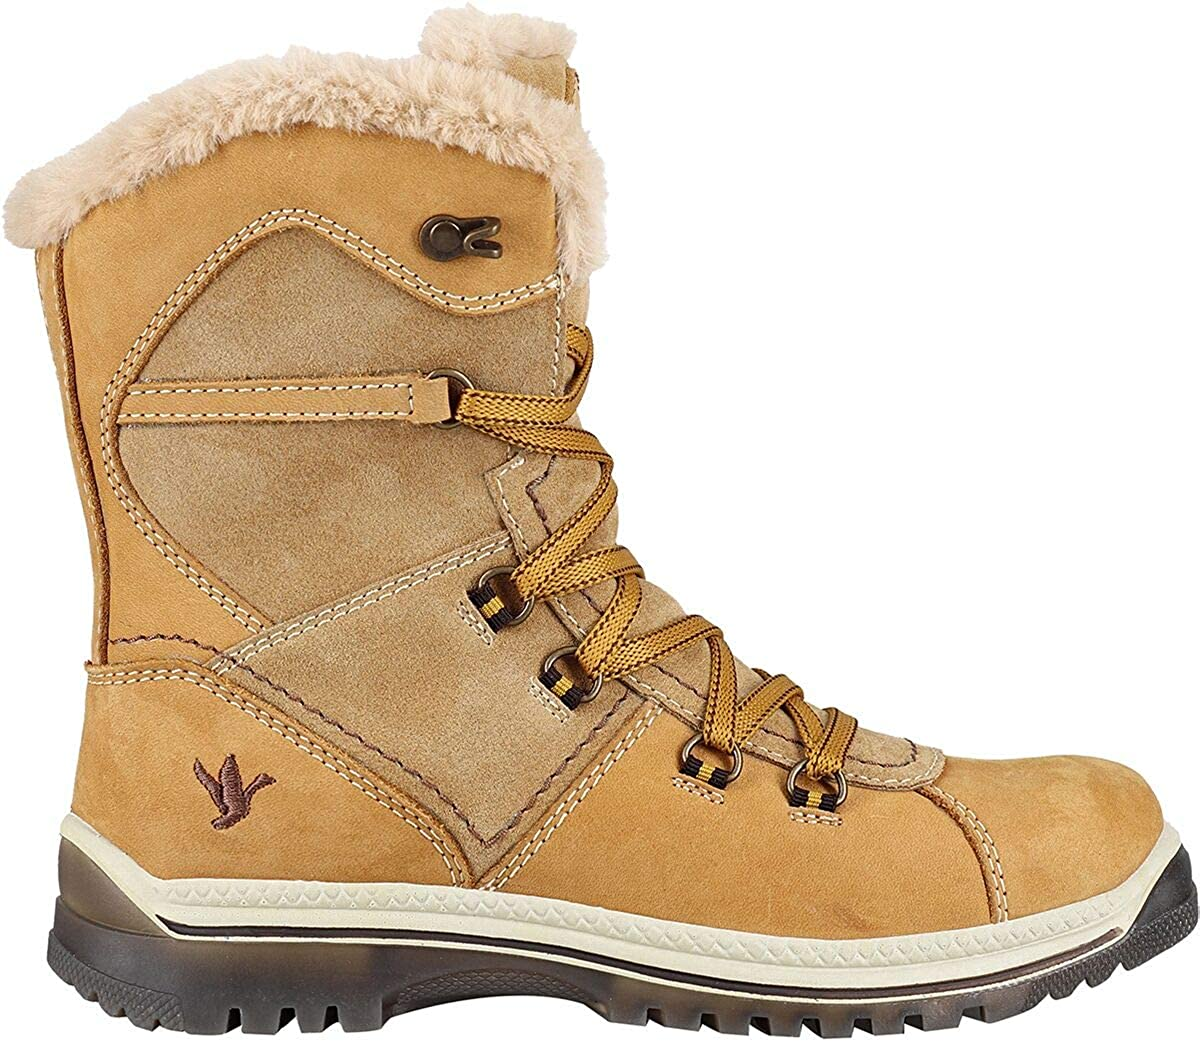 Santana Opening large release sale Canada Daily bargain sale Womens Majesta2 Boot